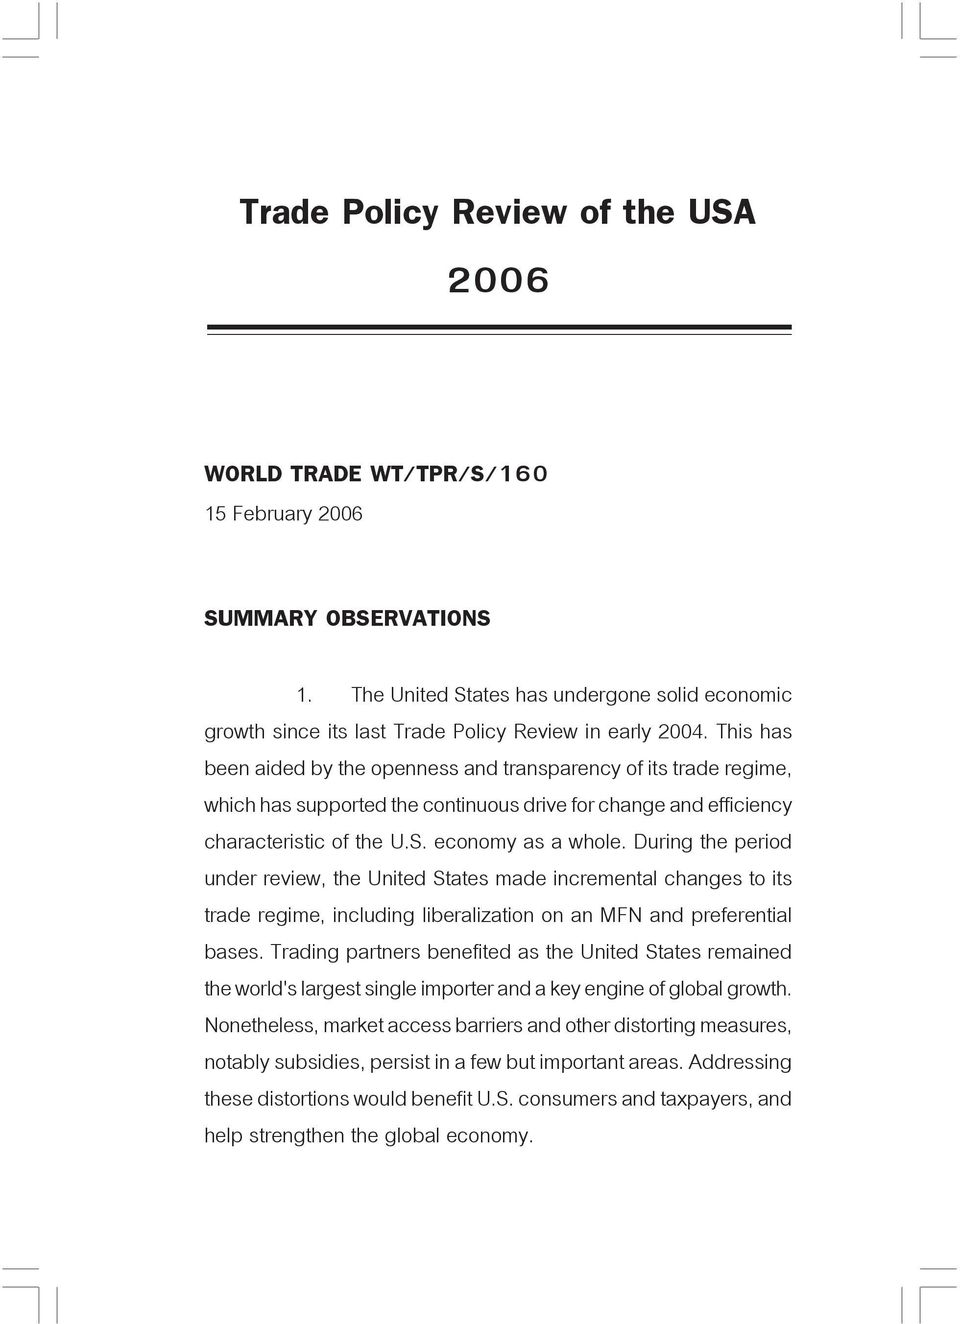 This has been aided by the openness and transparency of its trade regime, which has supported the continuous drive for change and efficiency characteristic of the U.S. economy as a whole.